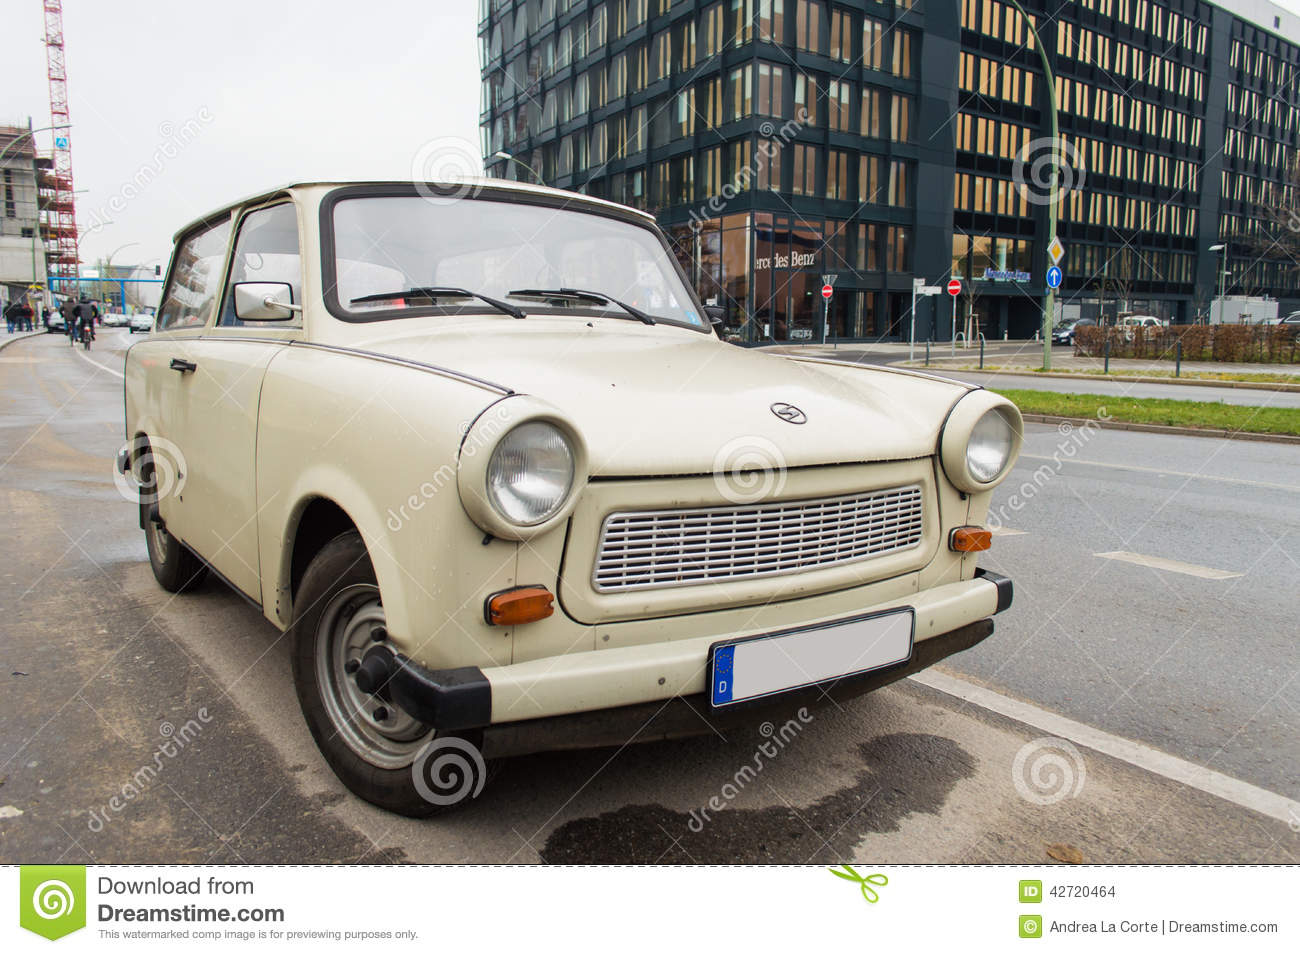 Trabant Clipart Old Trabant Car Editorial Stock Image Image Of Communism 42720464